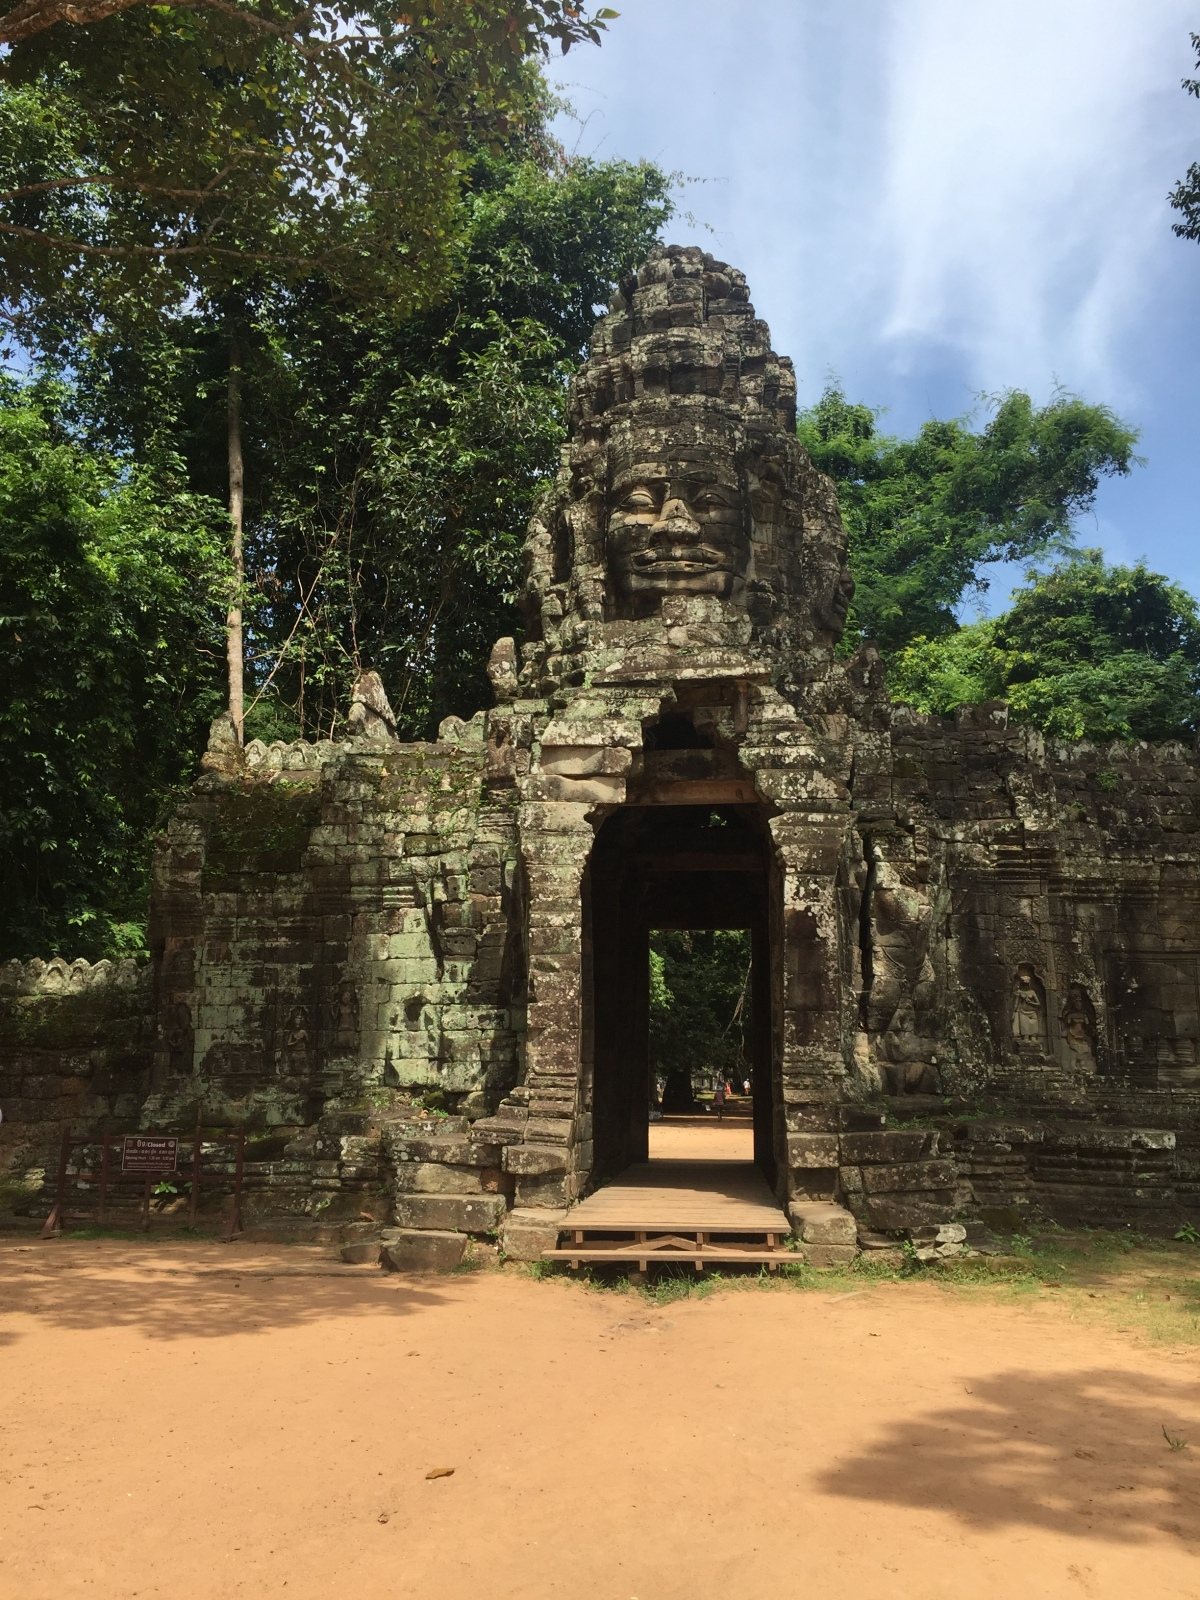 Siem Reap:  The temples of Angkor.